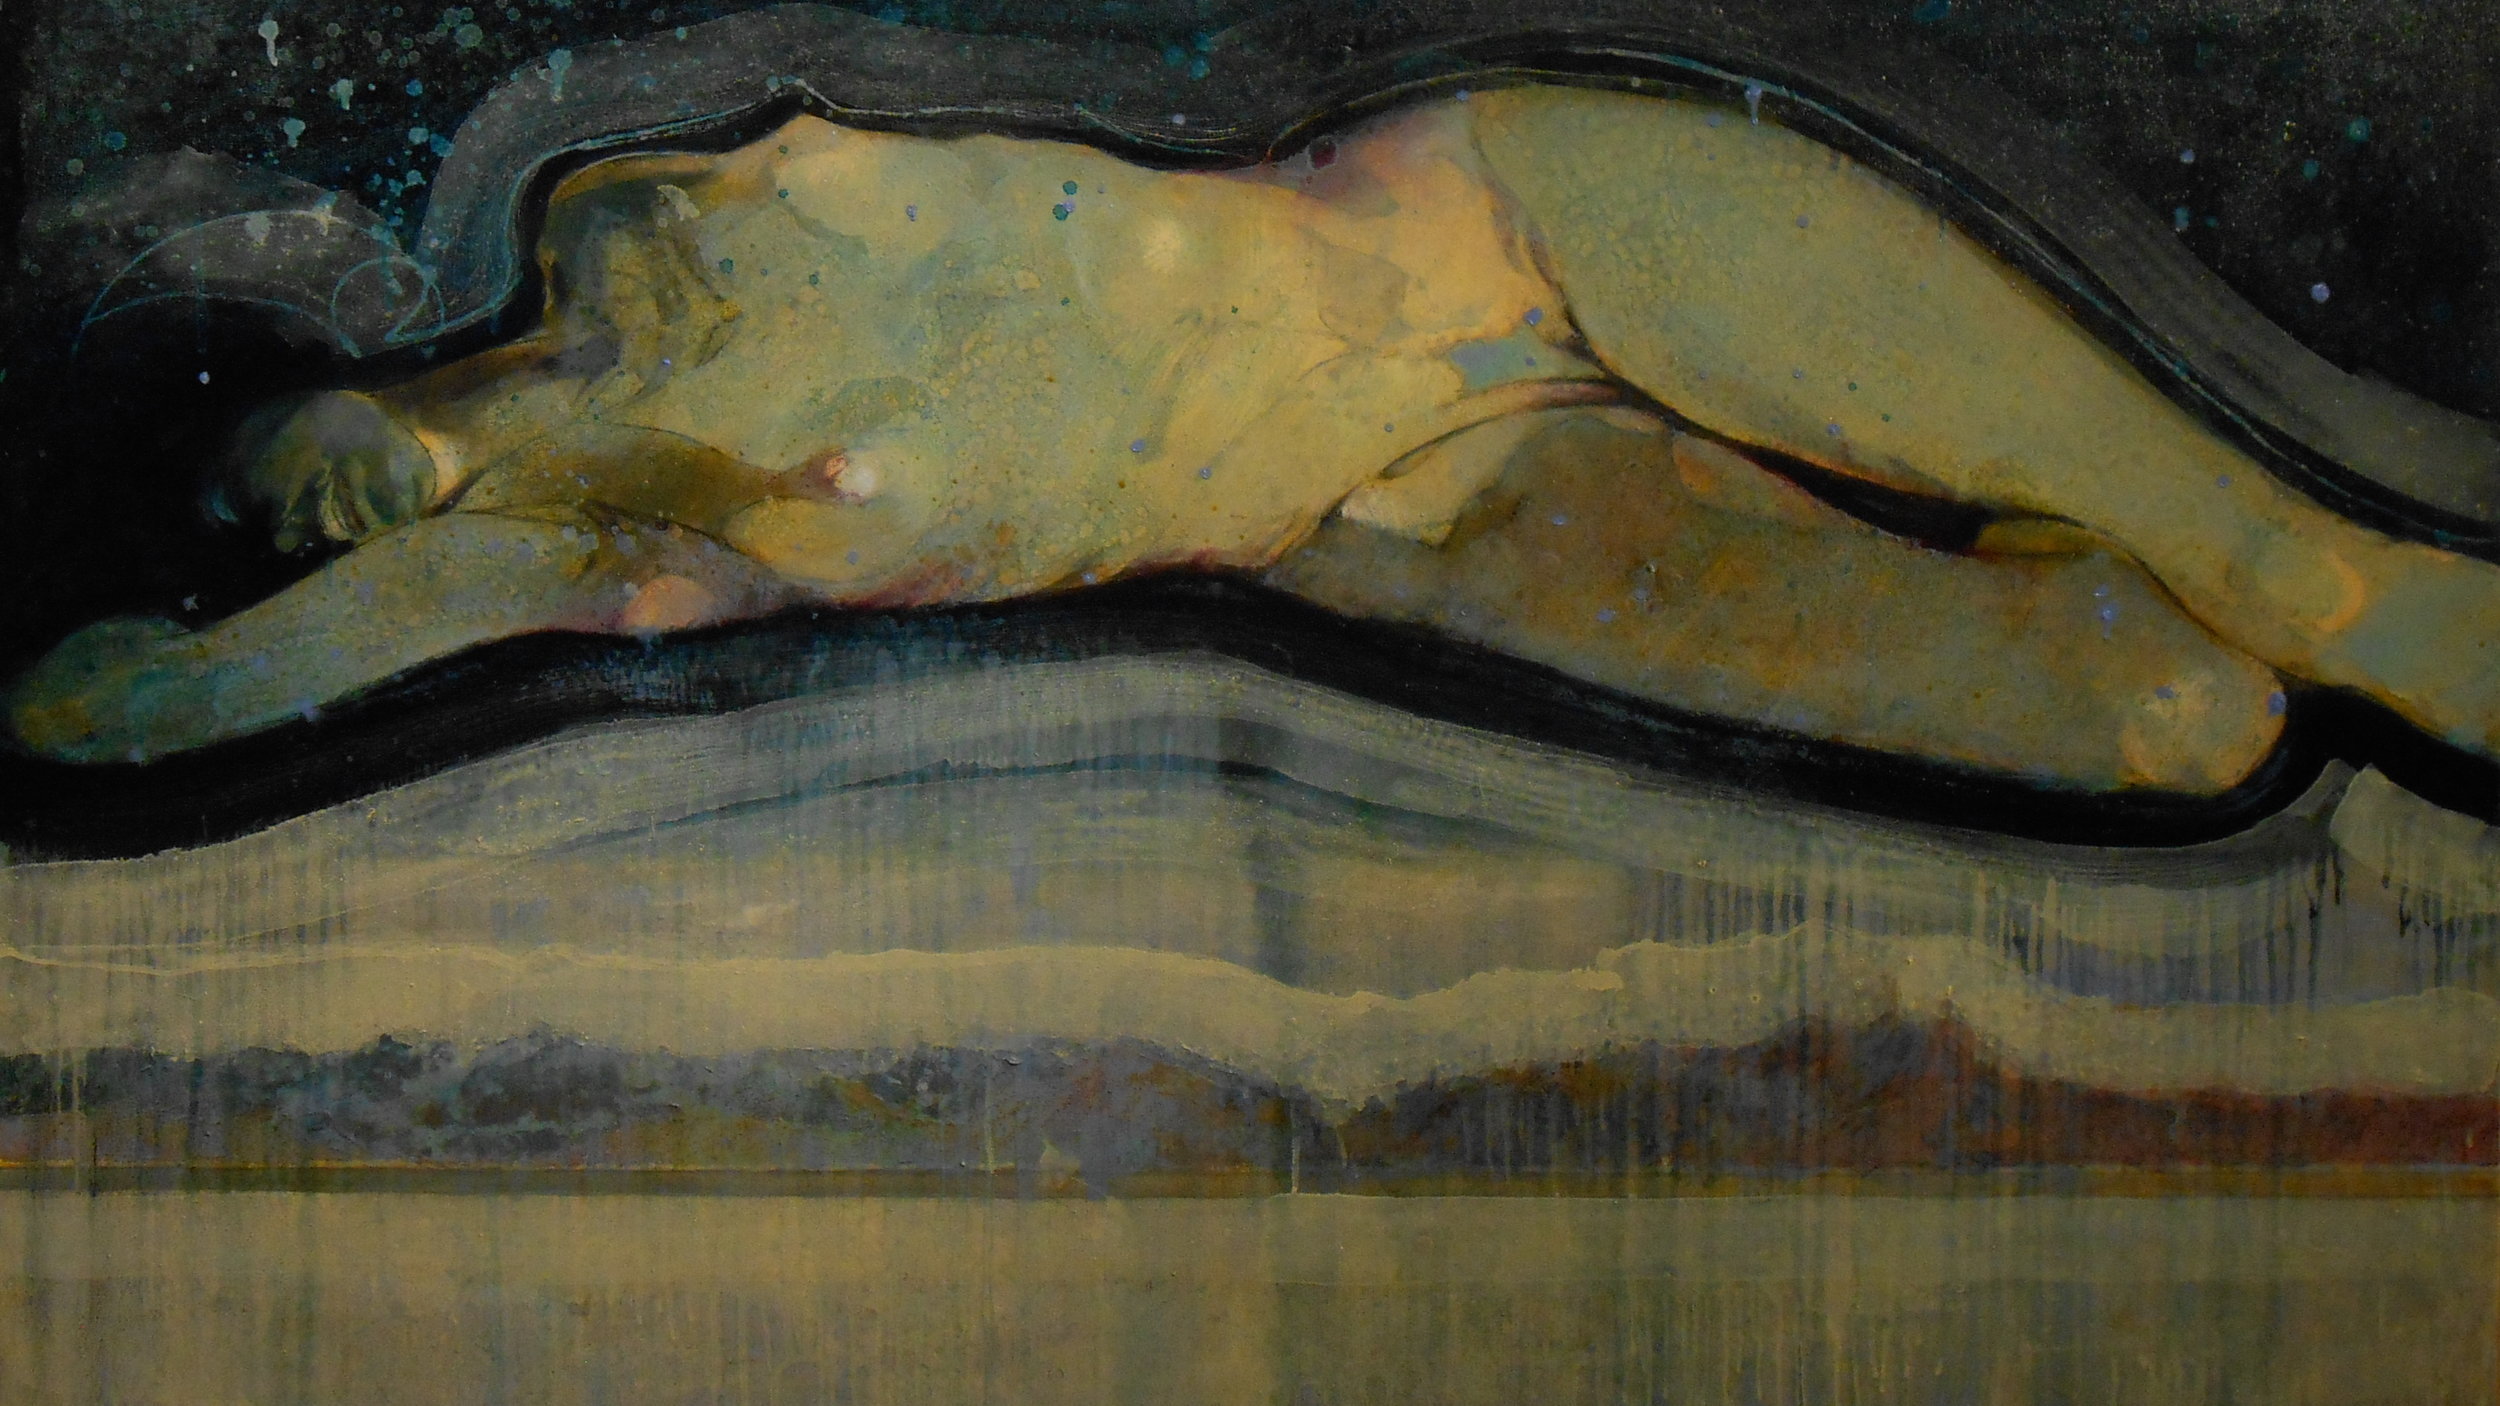 Paint 13. Discovery Bay, Puget Sound Series_Oil on Canvas_ Mar 30 2016_36x60.JPG